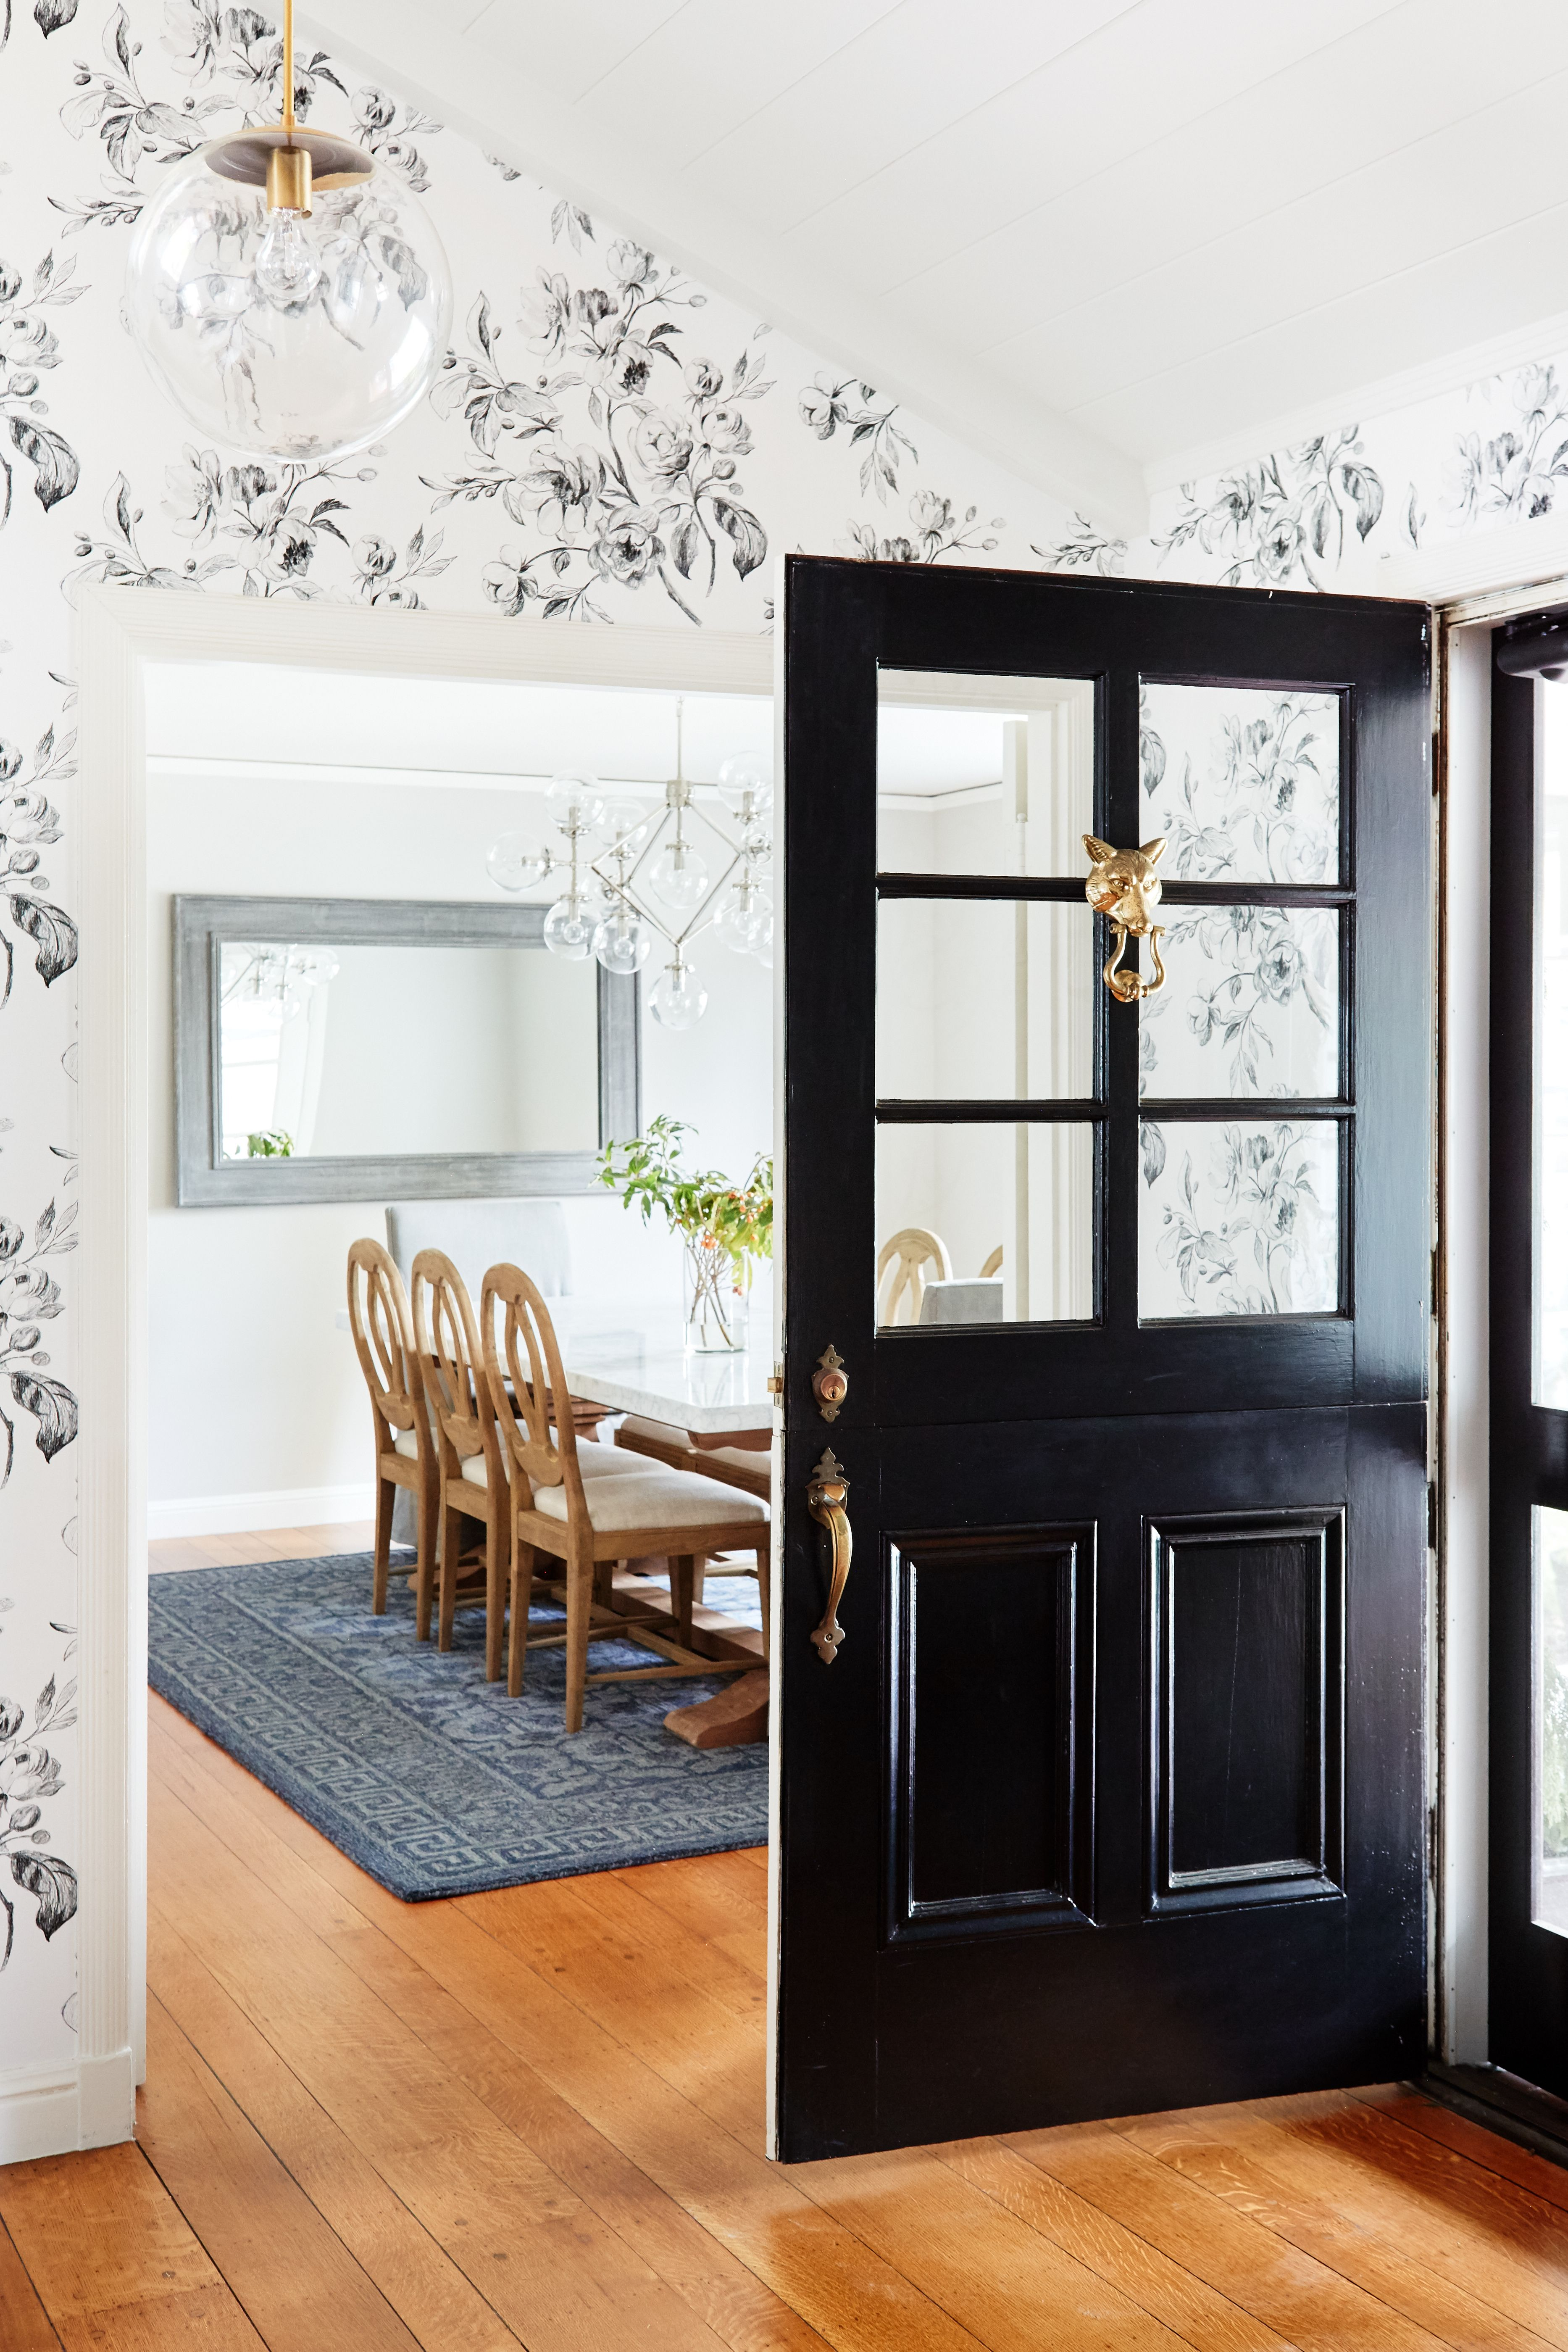 Bright hallway wallpaper  A Classic Home Tour Full of Gorgeous Pattern  HOME ENTRANCES